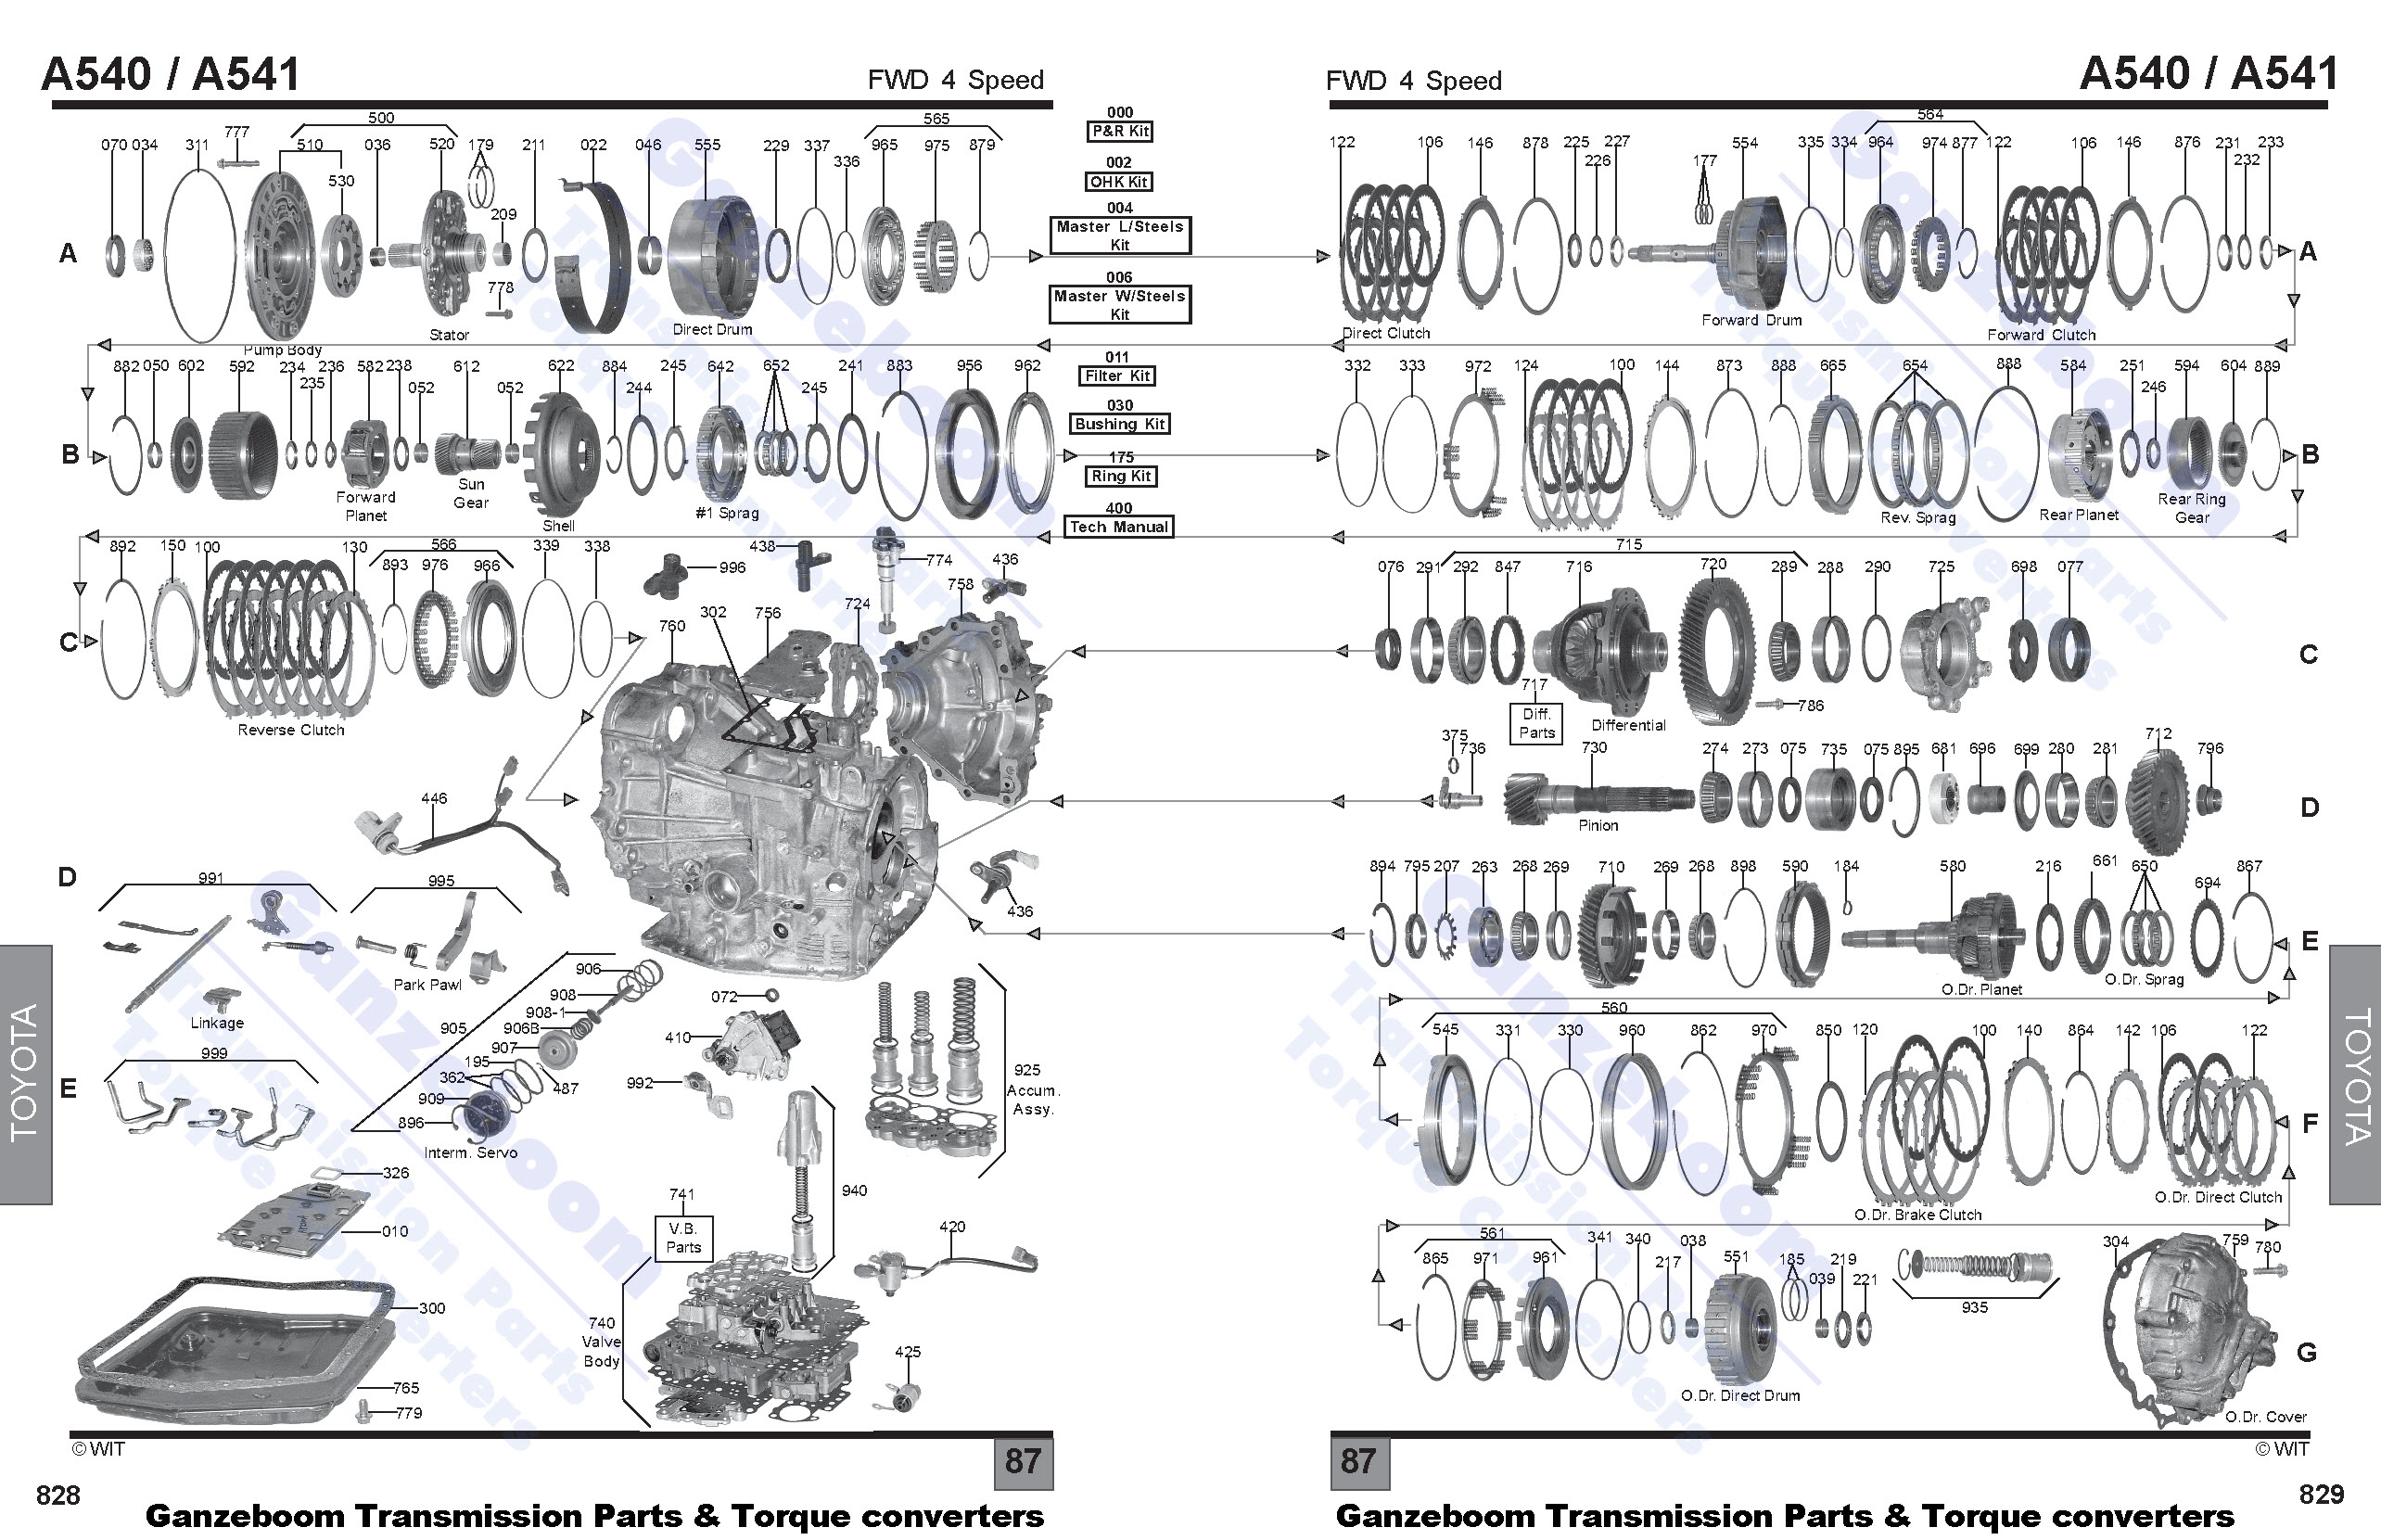 Toyota A340 Transmission Parts Diagram Wiring Diagram